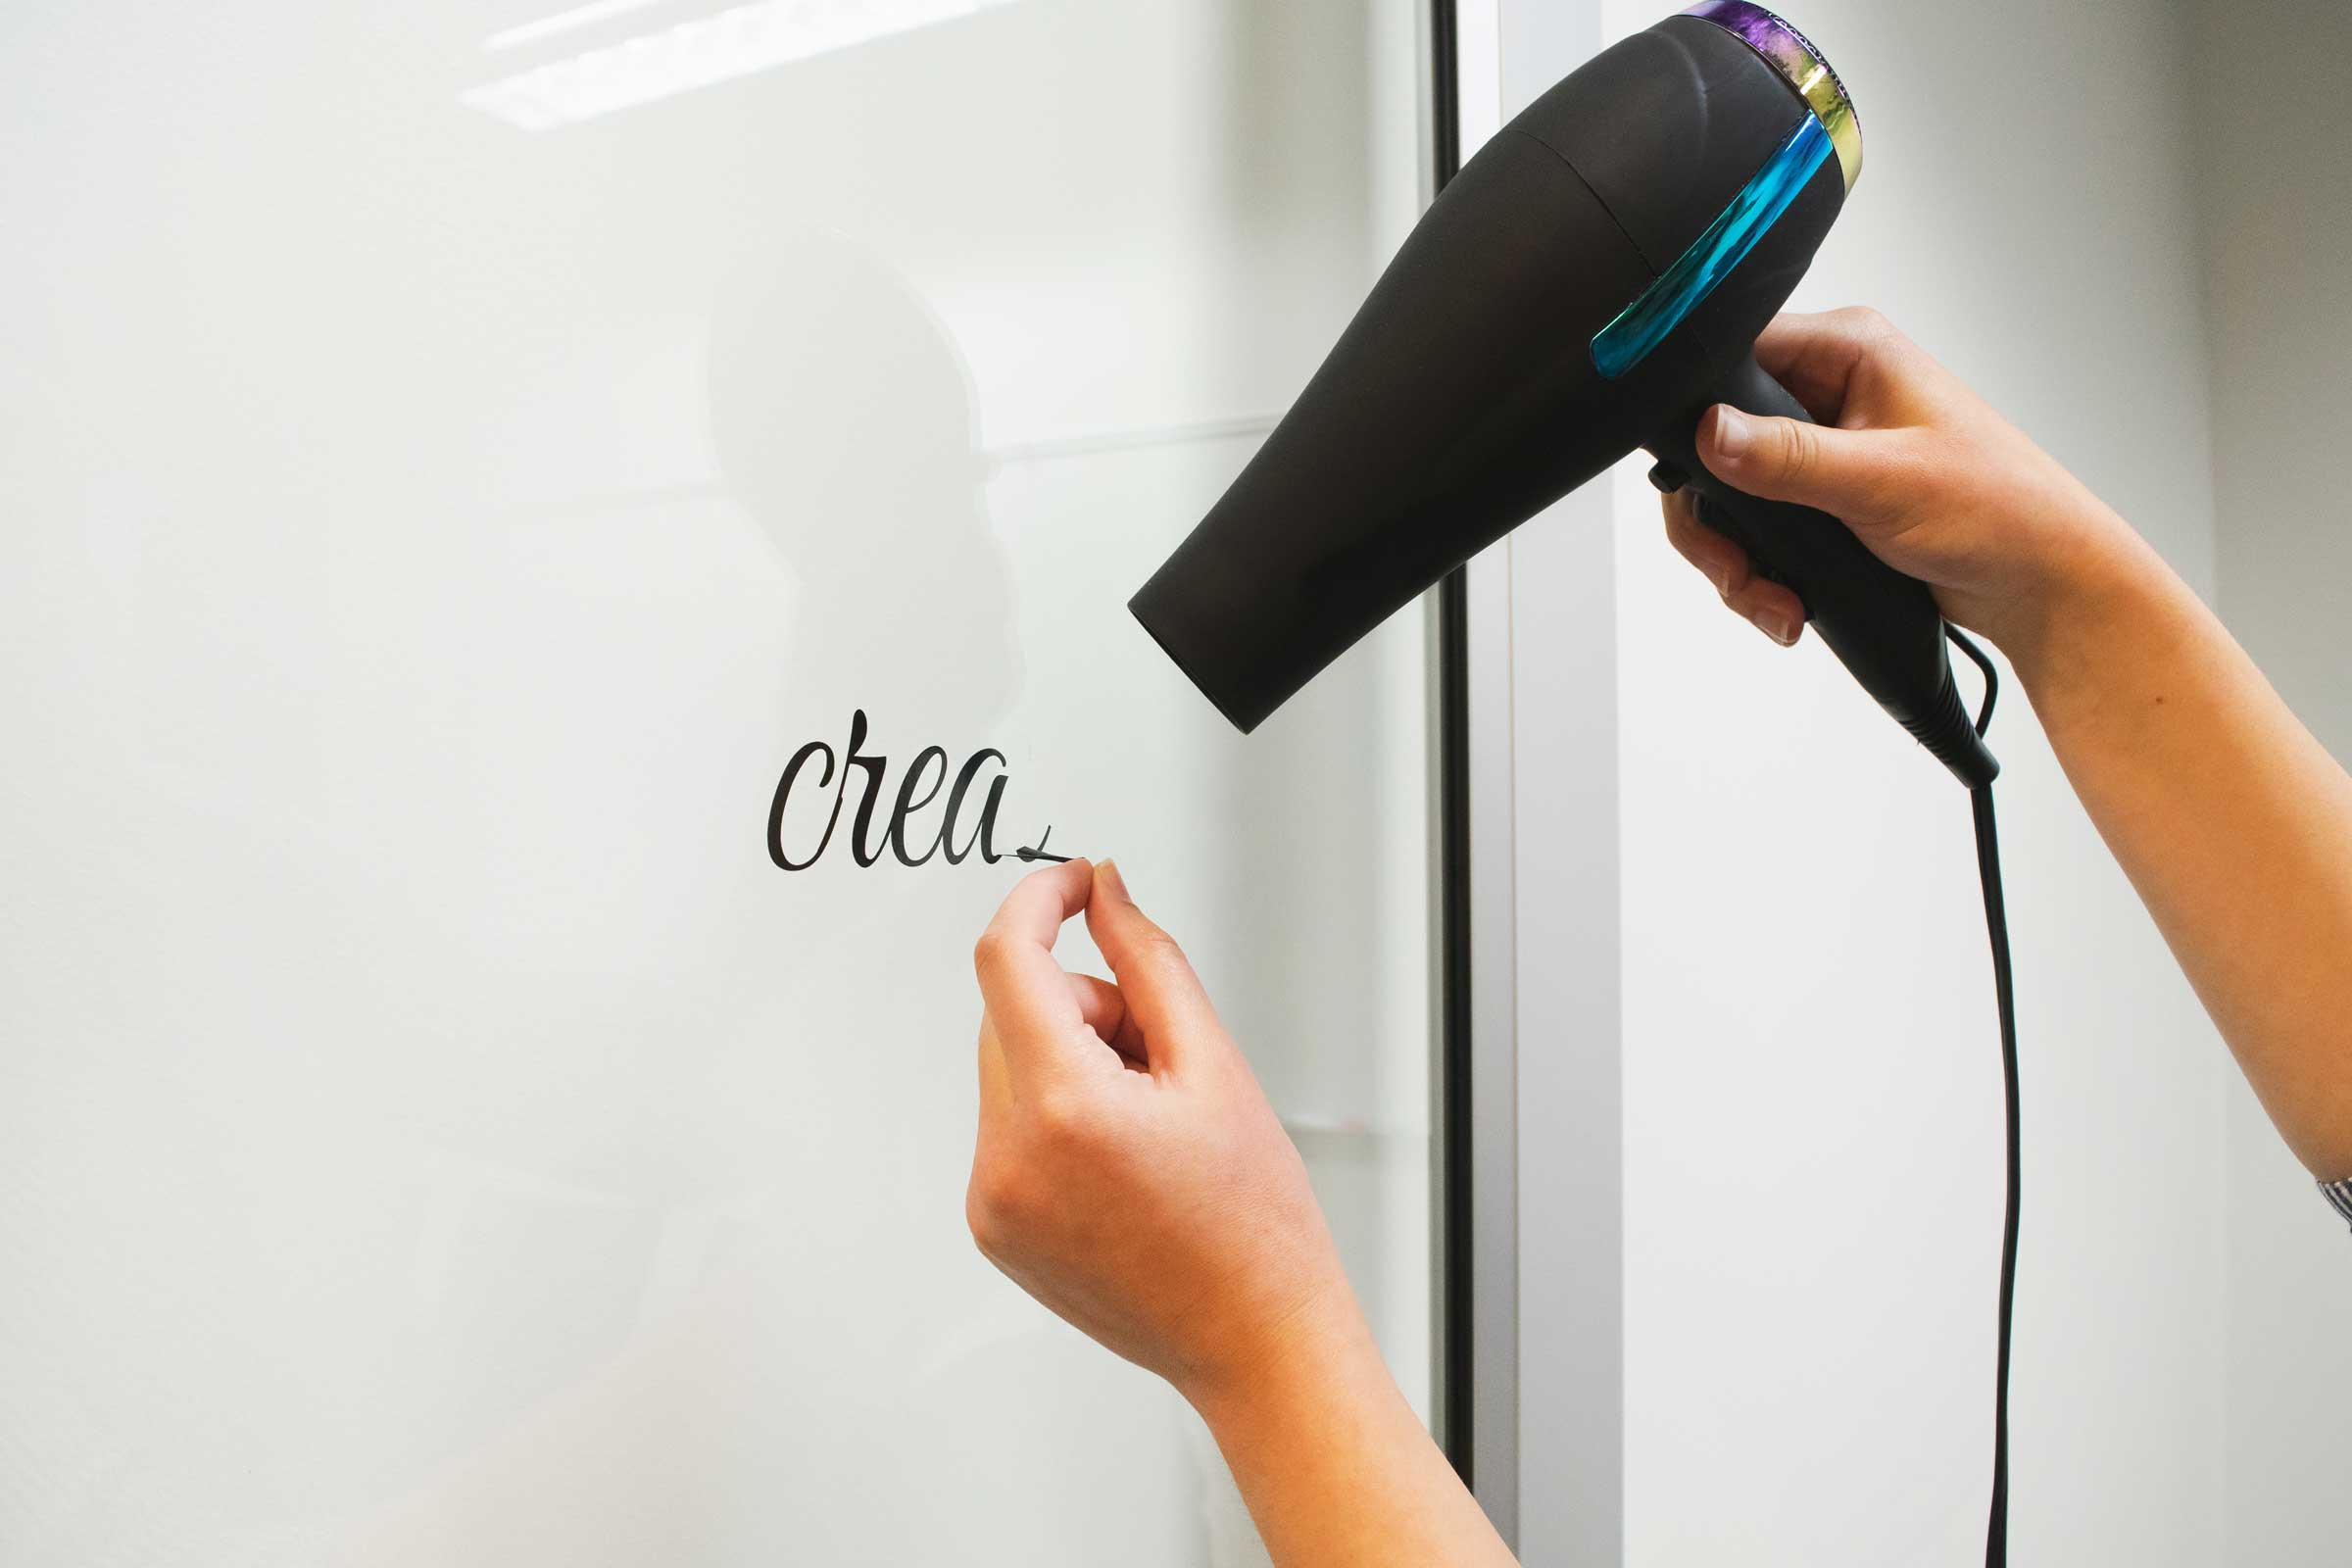 Using a blow dryer to remove hard-to-remove vinyl lettering